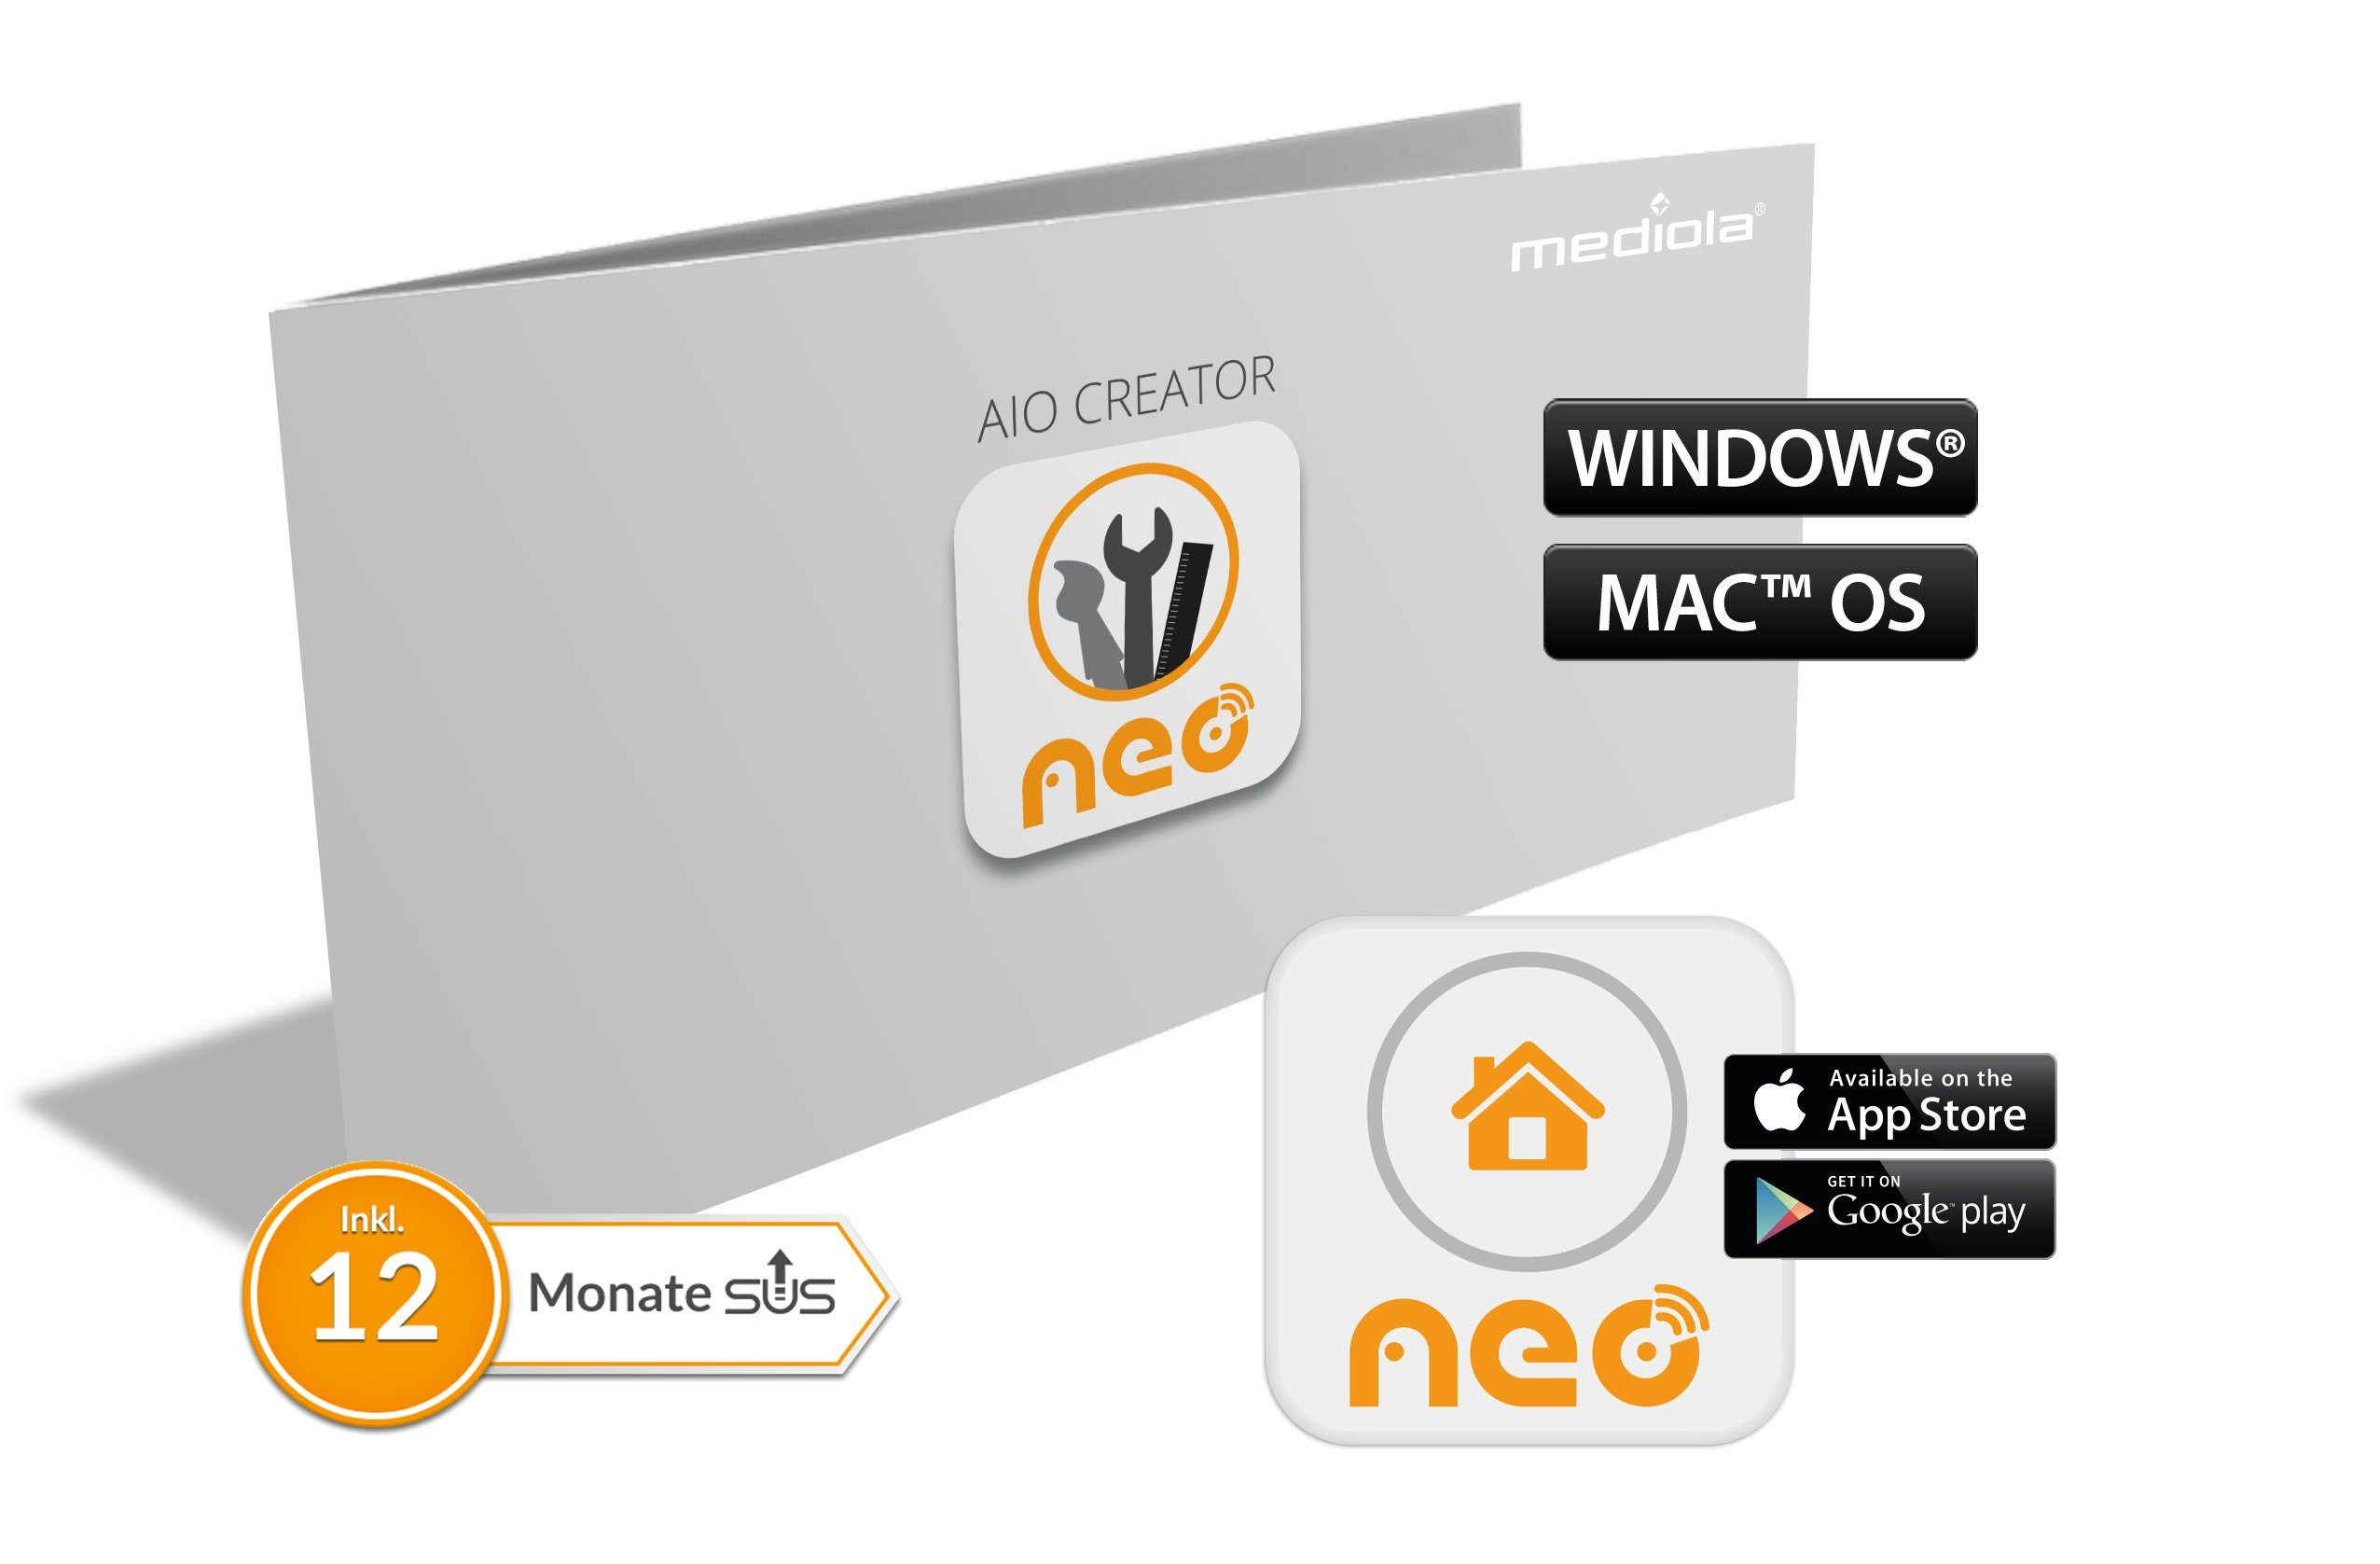 Mediola Smart Home - Steuerung & Komfort »AIO Creator NEO homematic Edition«